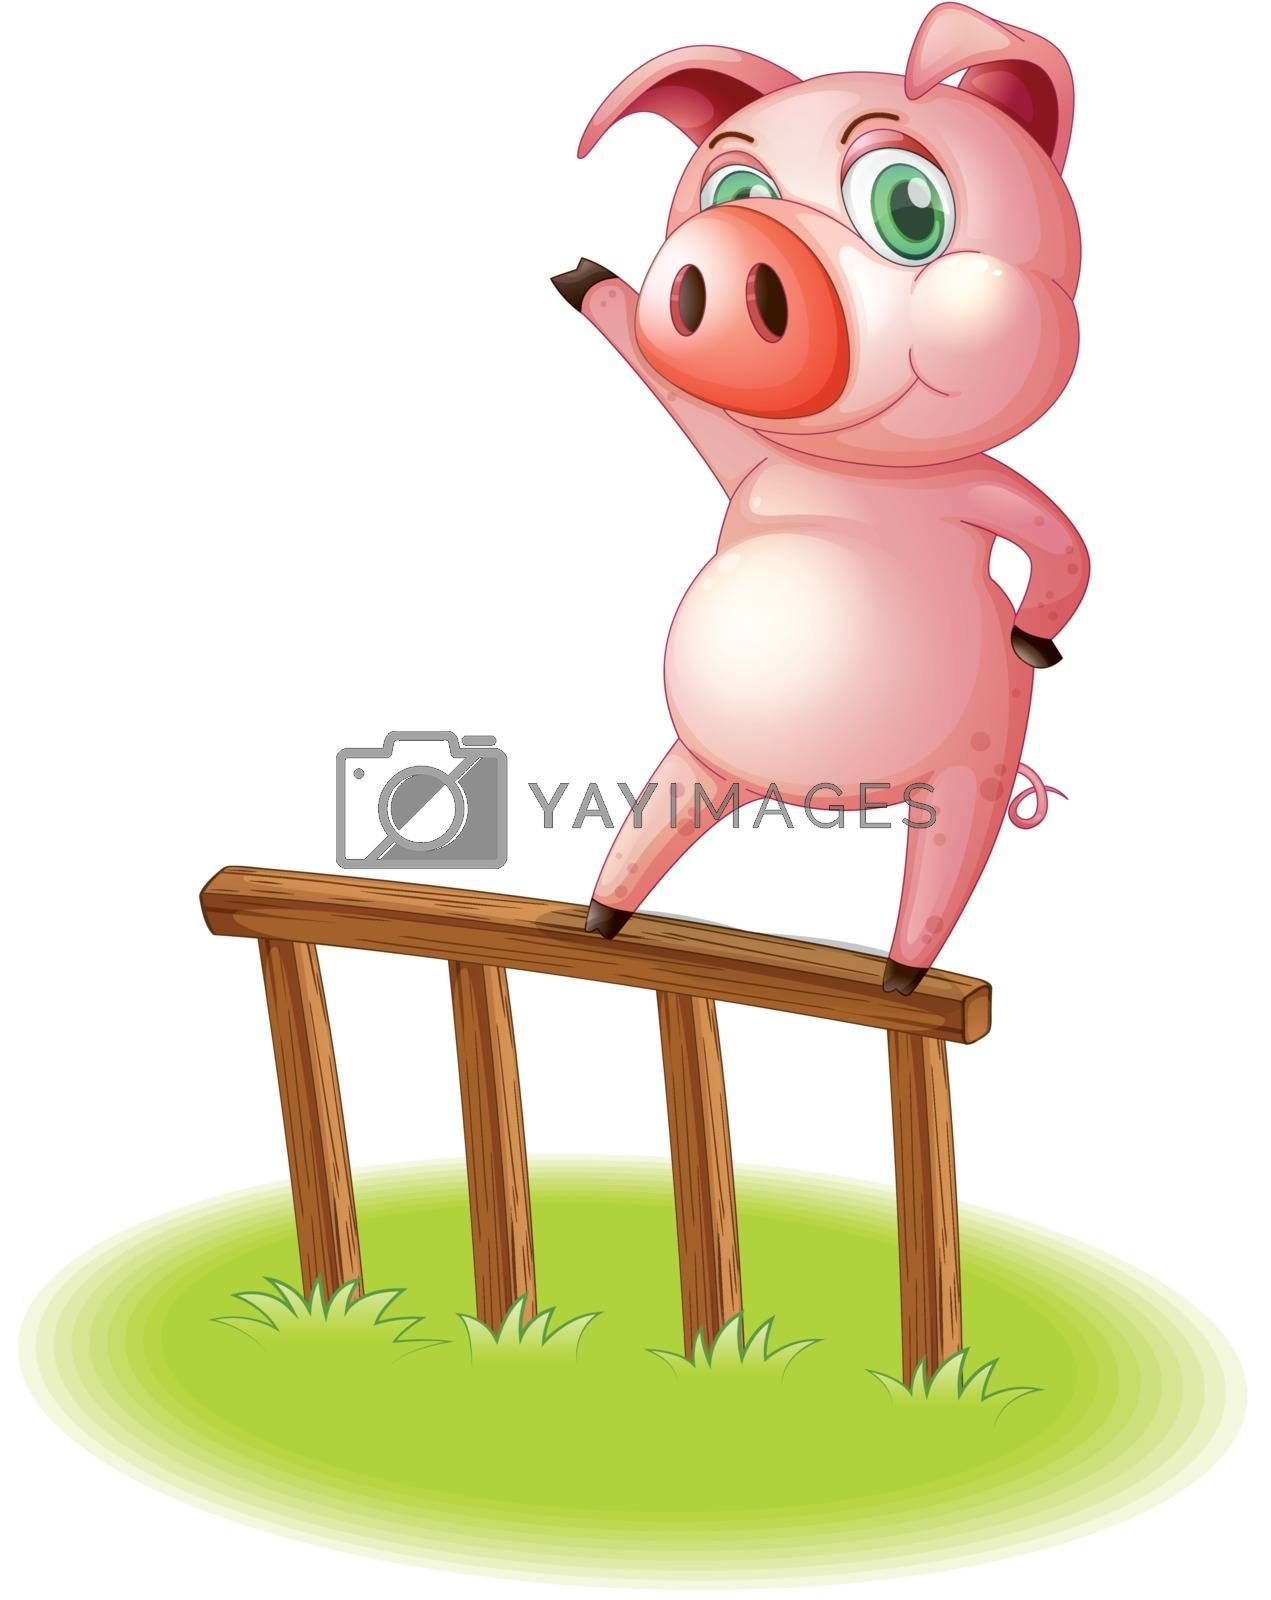 Illustration of a pig standing above the wooden fence on a white background